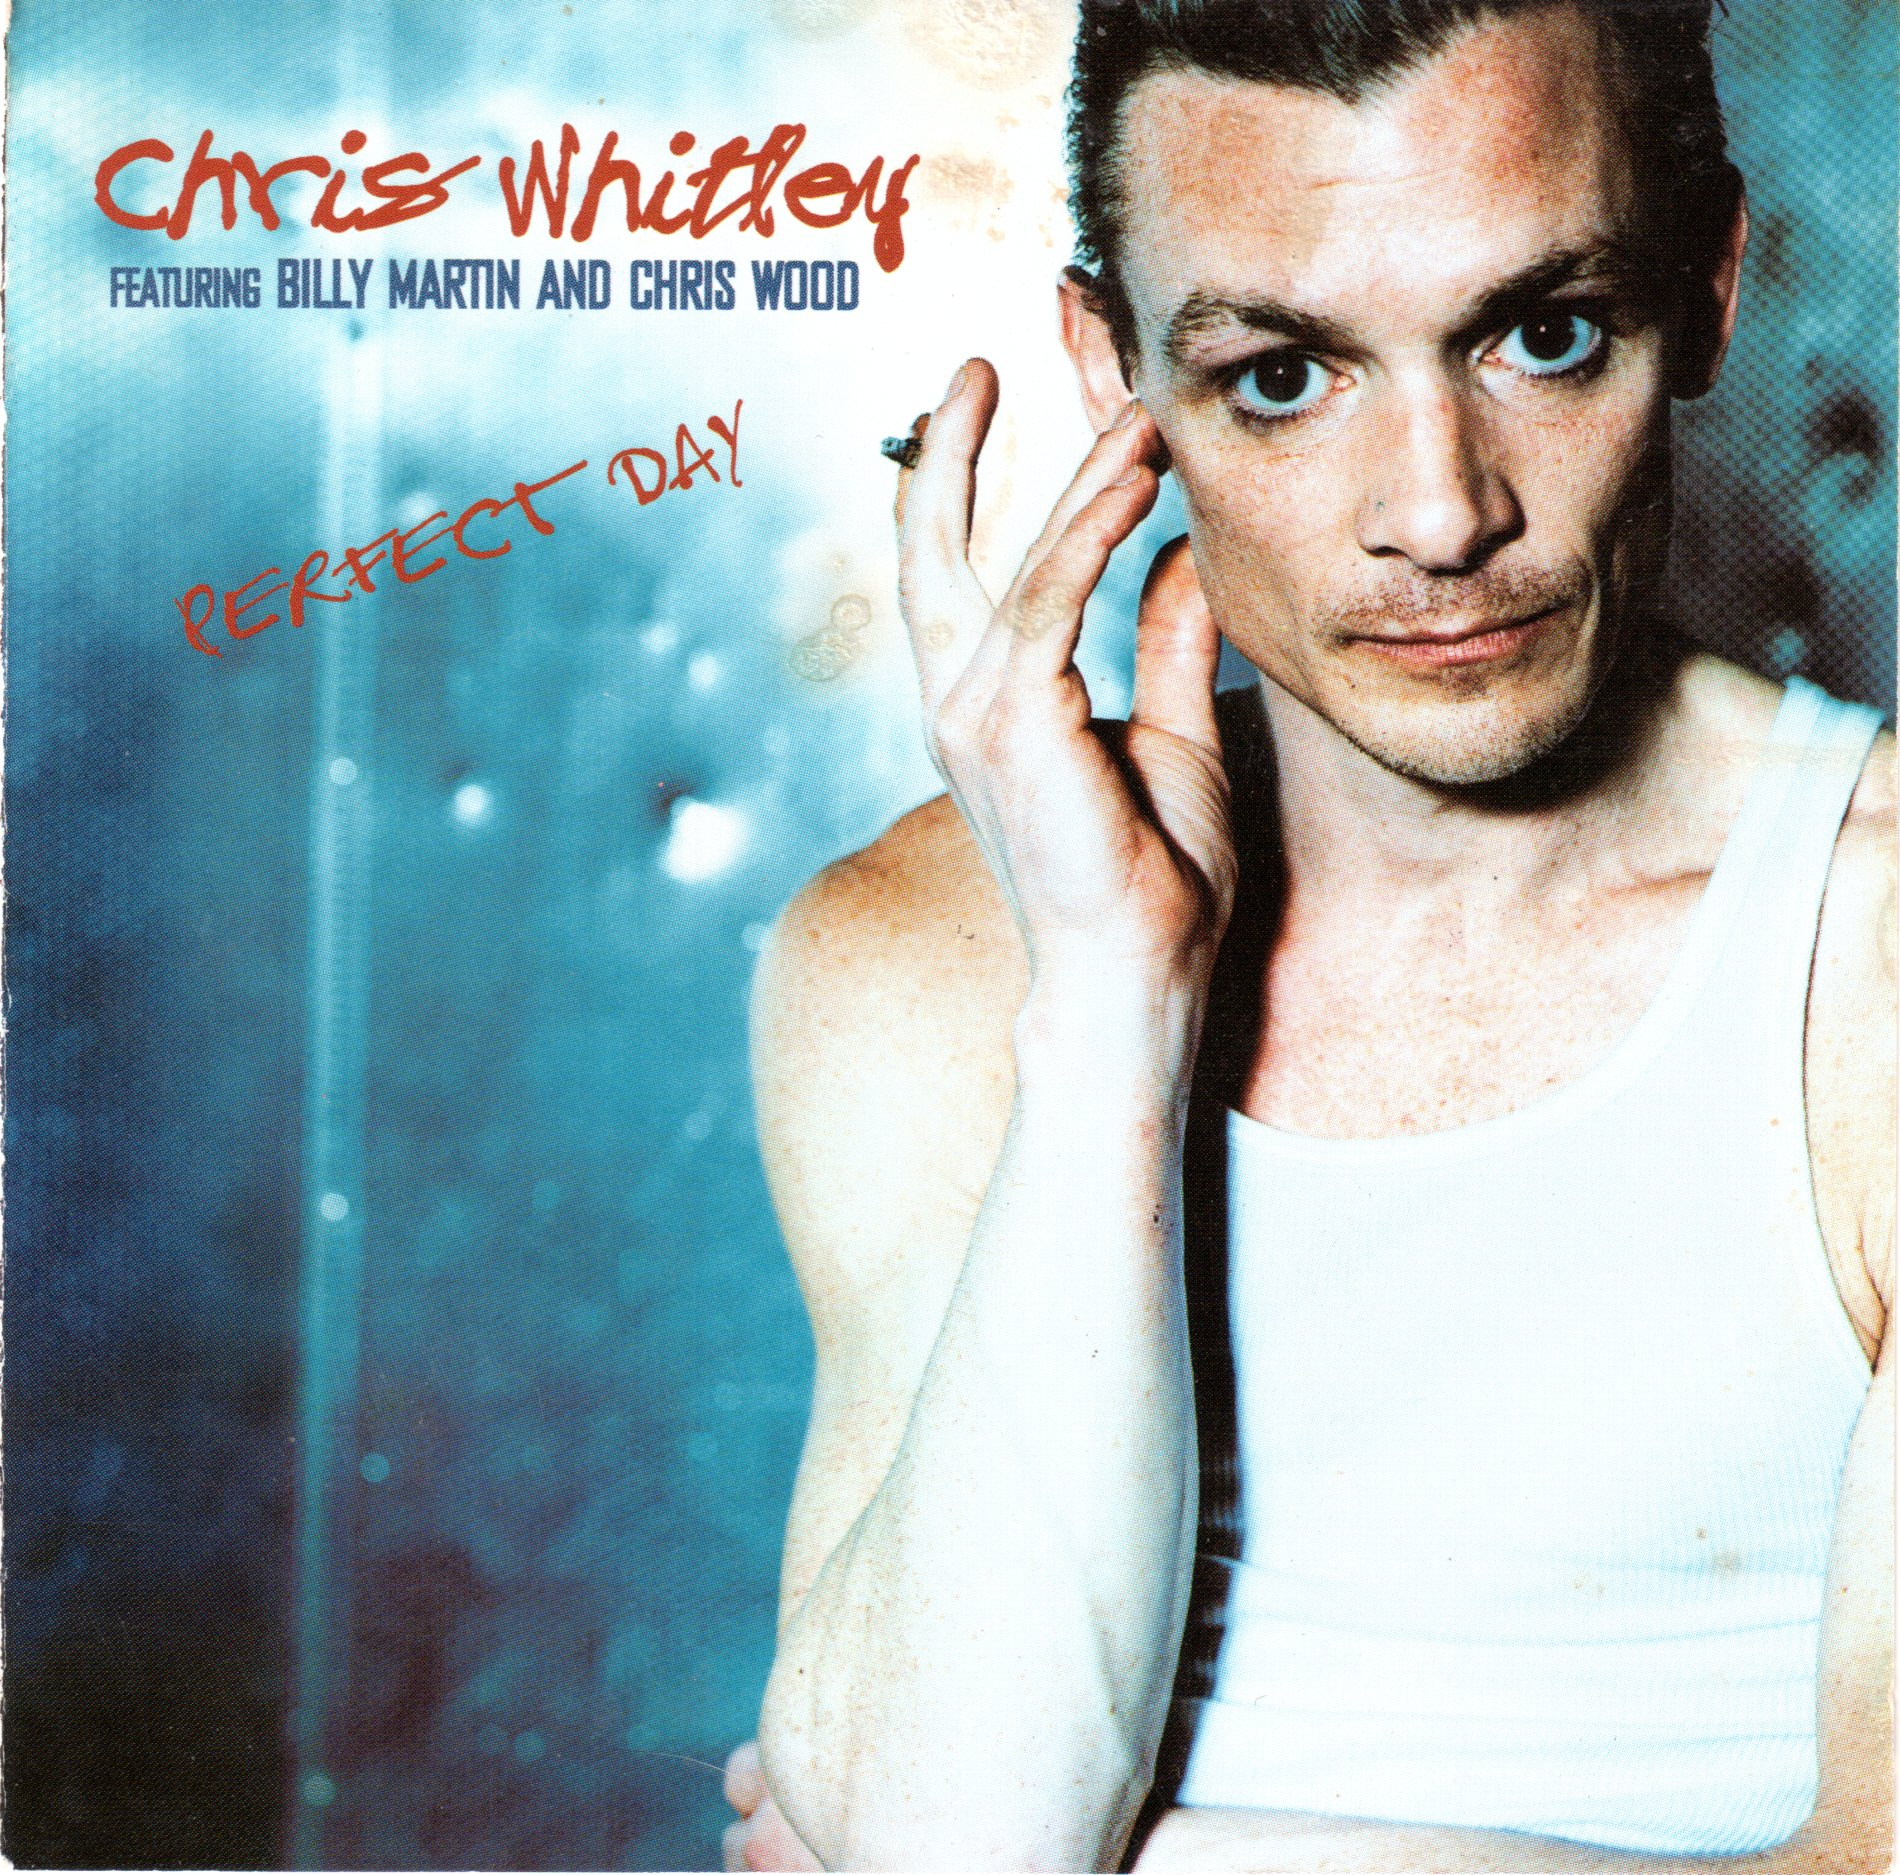 Chris Whitley - Perfect day (2000)